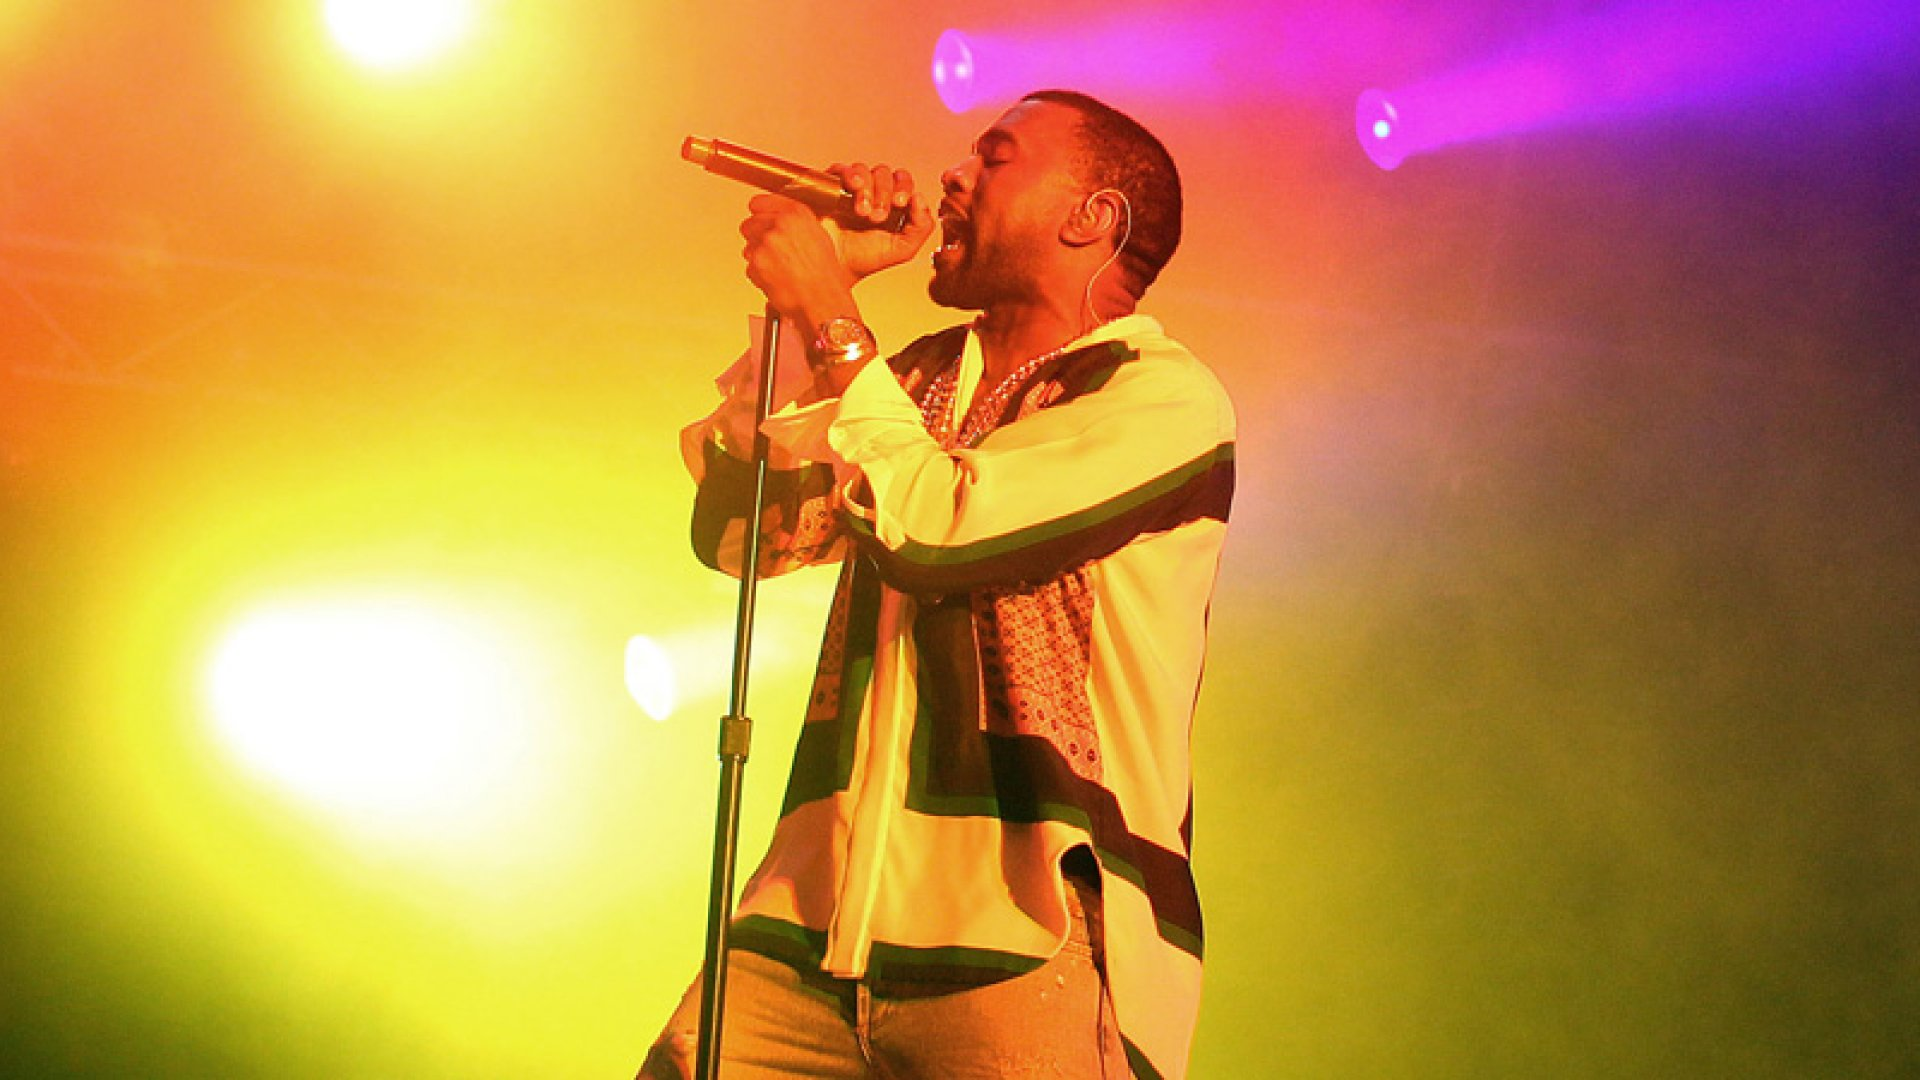 3 Surprising Leadership Lessons You Can Learn From Kanye West